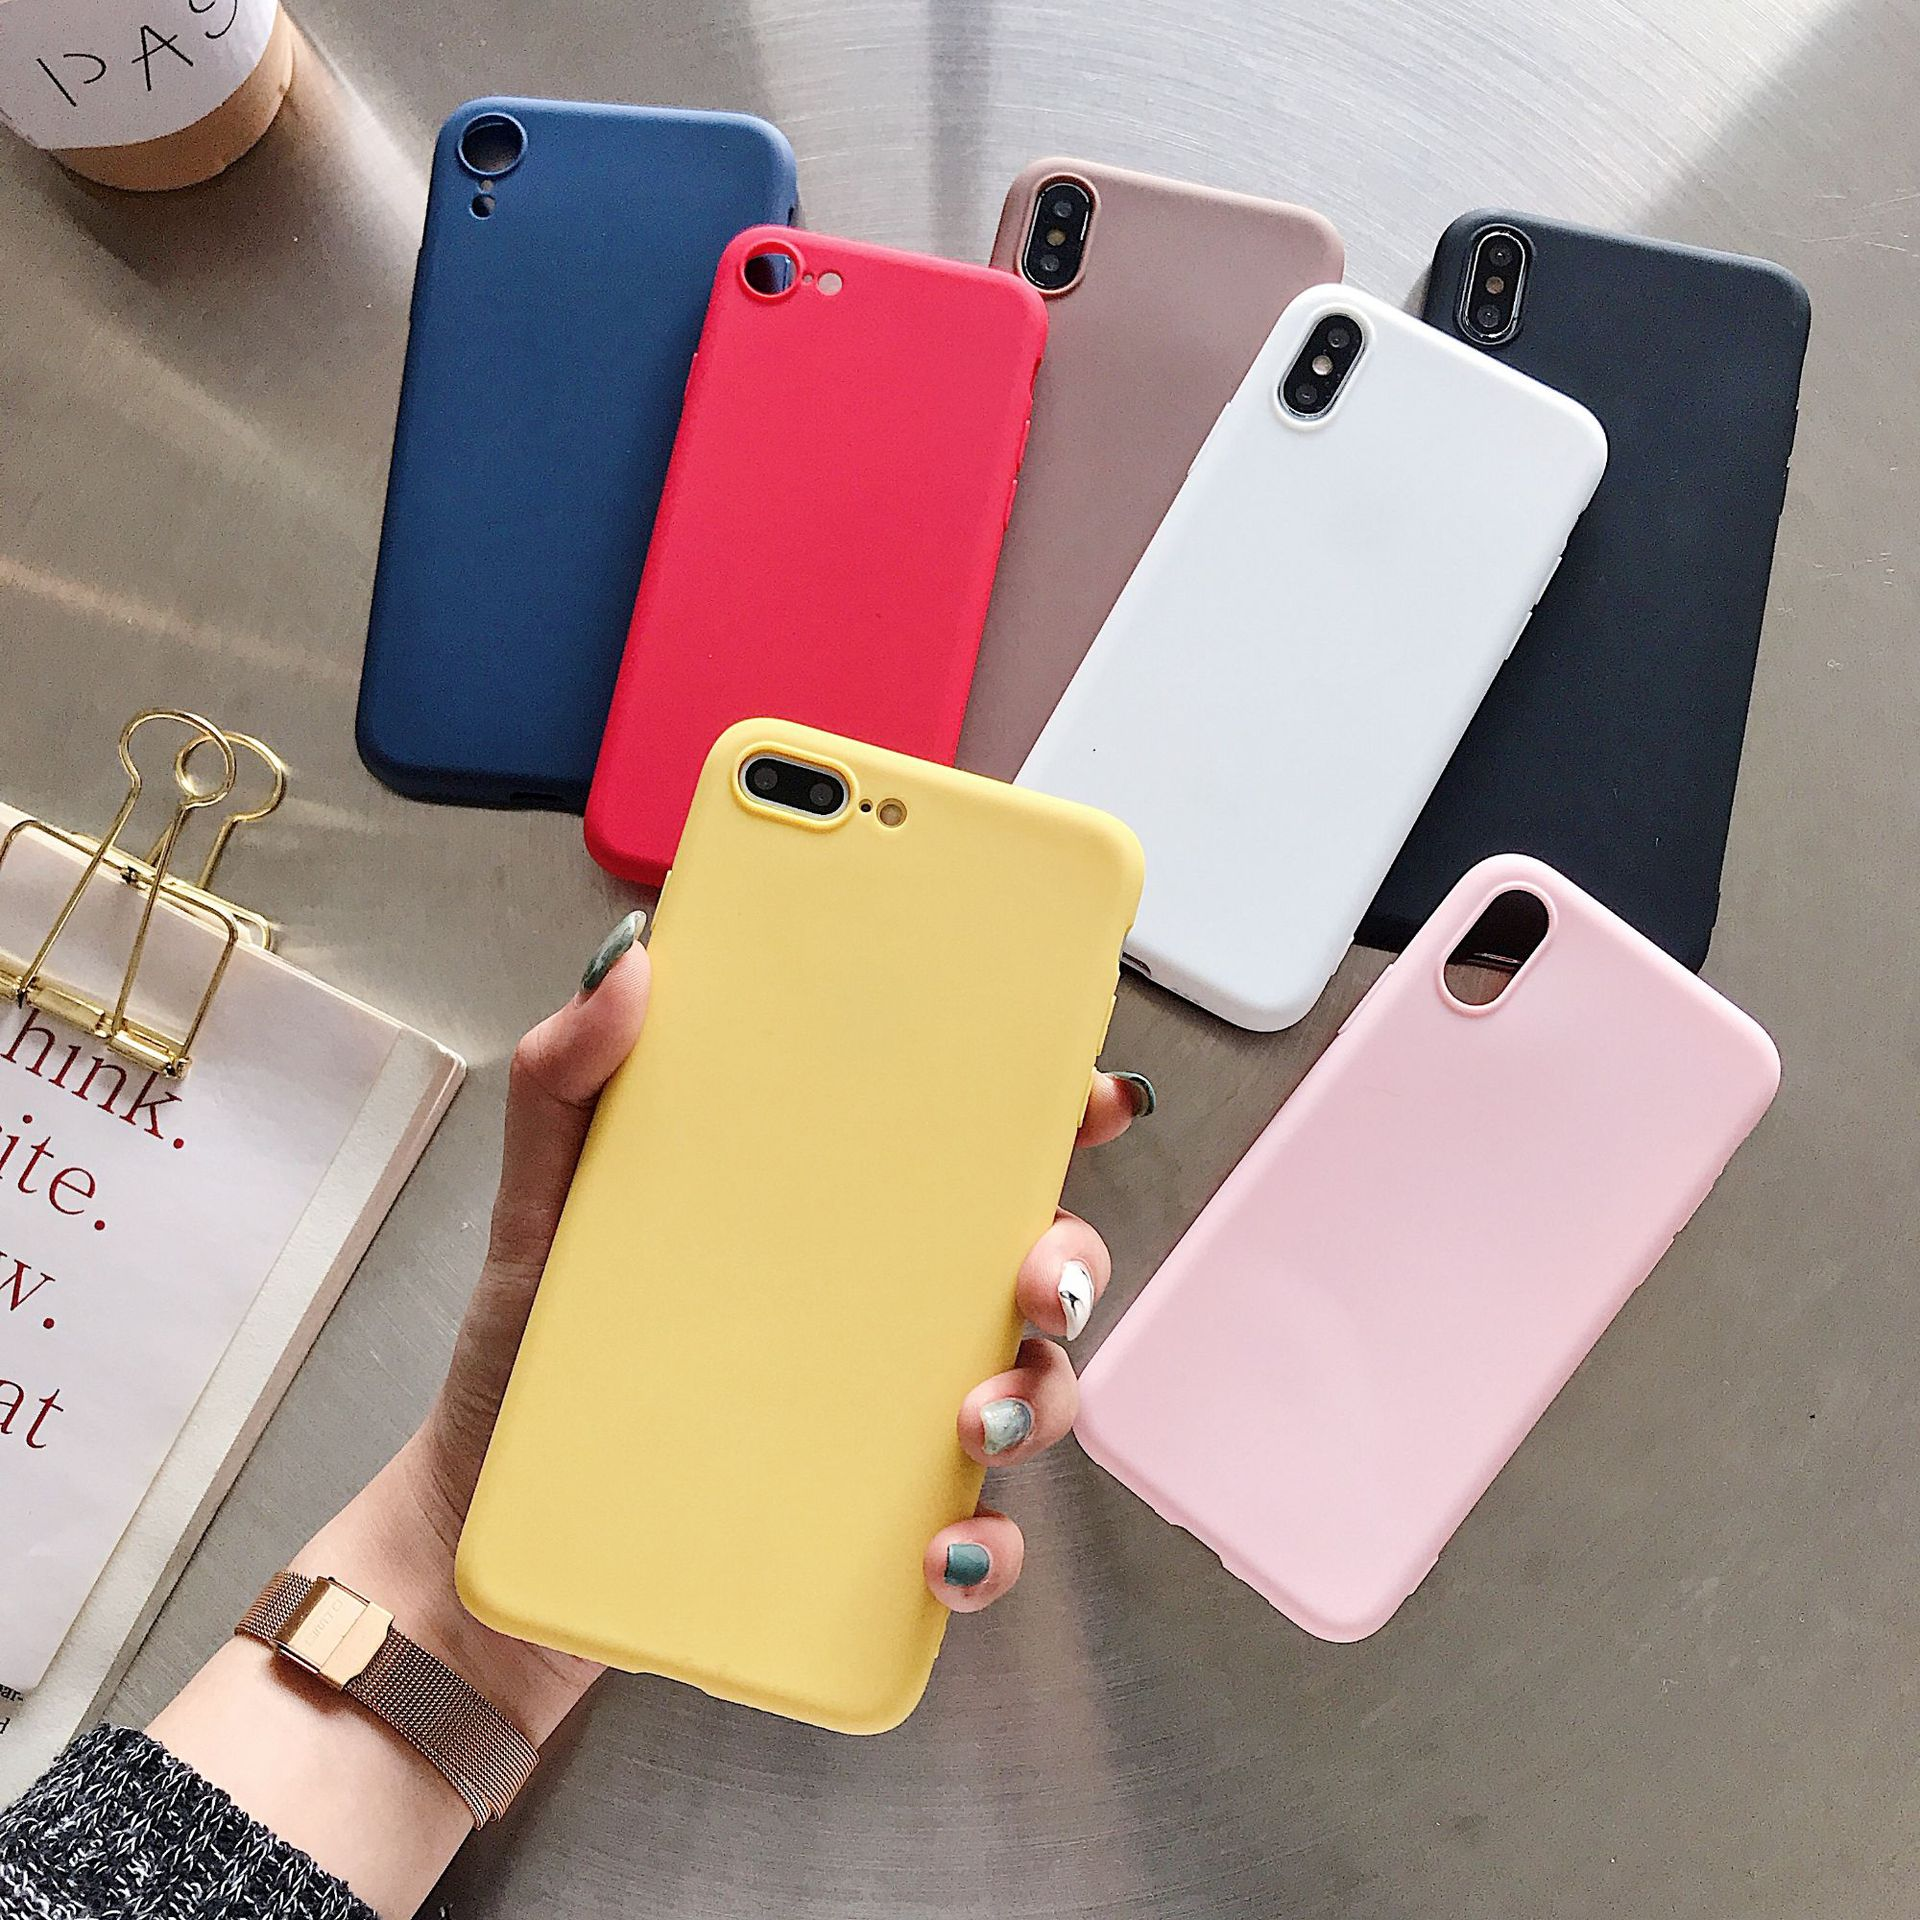 Fashion Matte <font><b>Silicon</b></font> Case For <font><b>Xiaomi</b></font> <font><b>Mi</b></font> 9 SE 8 Lite <font><b>A2</b></font> A1 <font><b>Capa</b></font> For Redmi 6 Pro 6A 5 Plus 5A 4X 4A Cute Candy Color Rubber Cover image